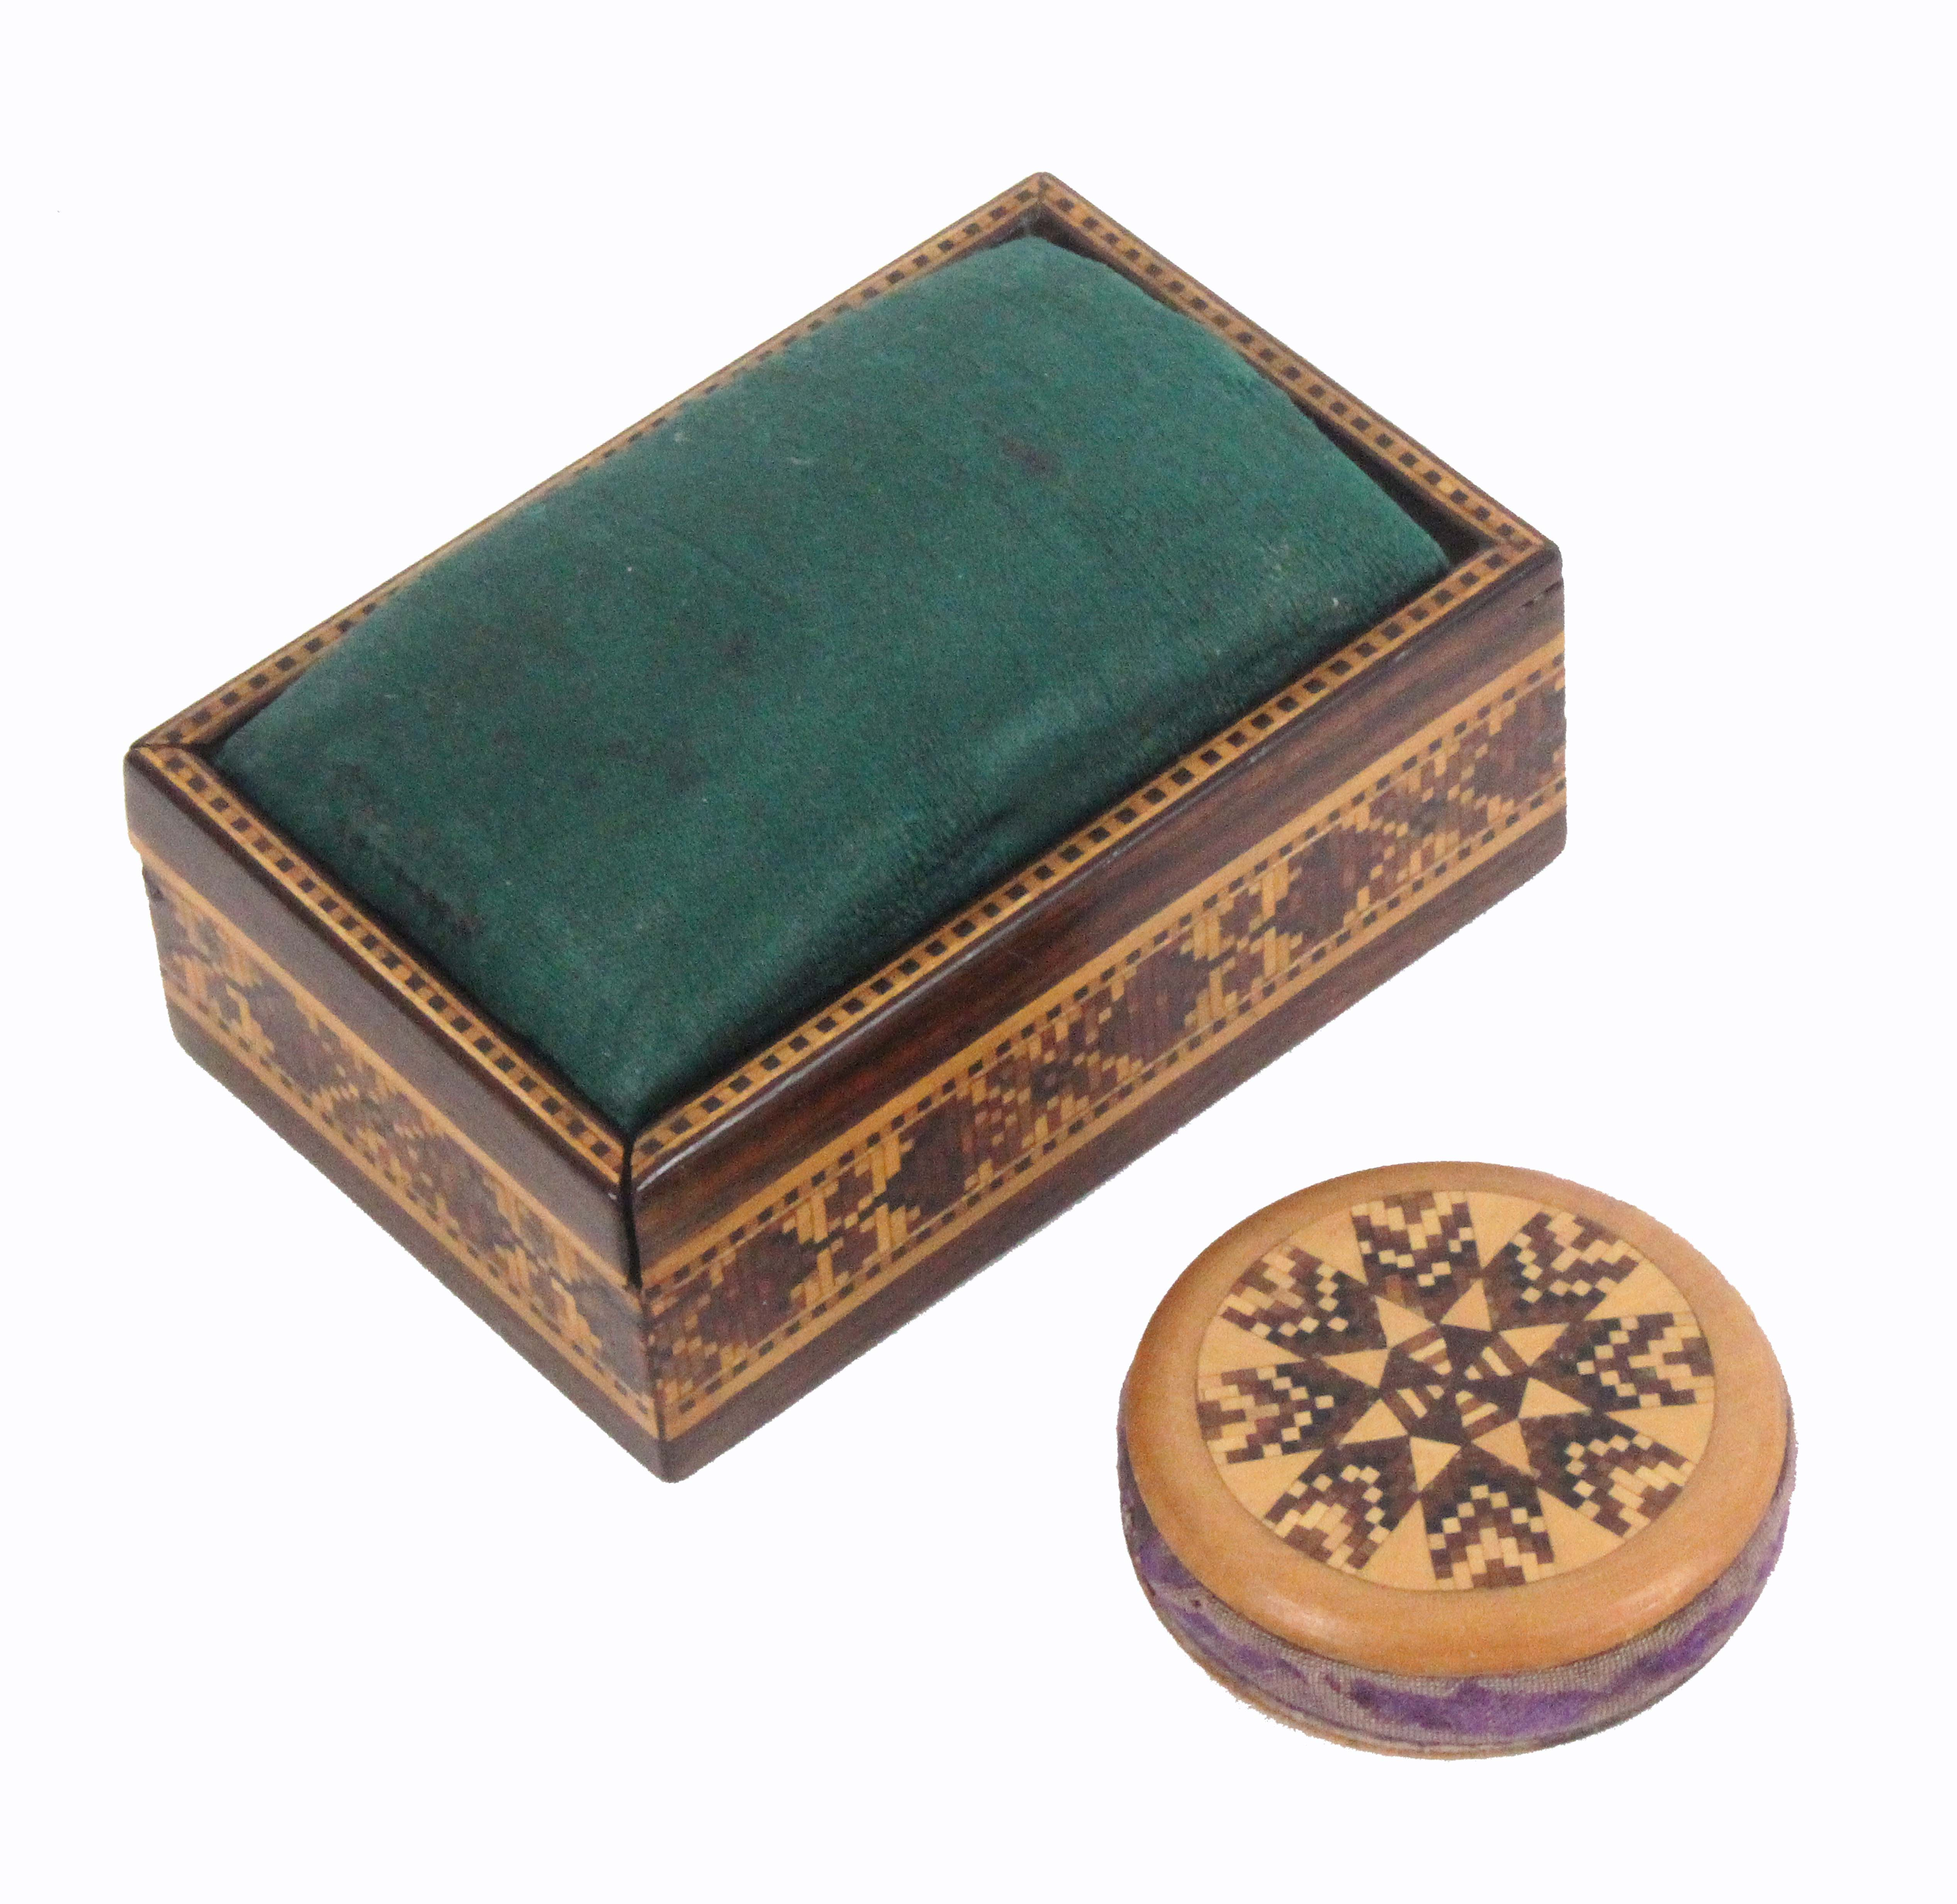 Lot 11 - Tunbridge ware - two pieces, comprising a rosewood geometric mosaic rectangular box with sliding lid